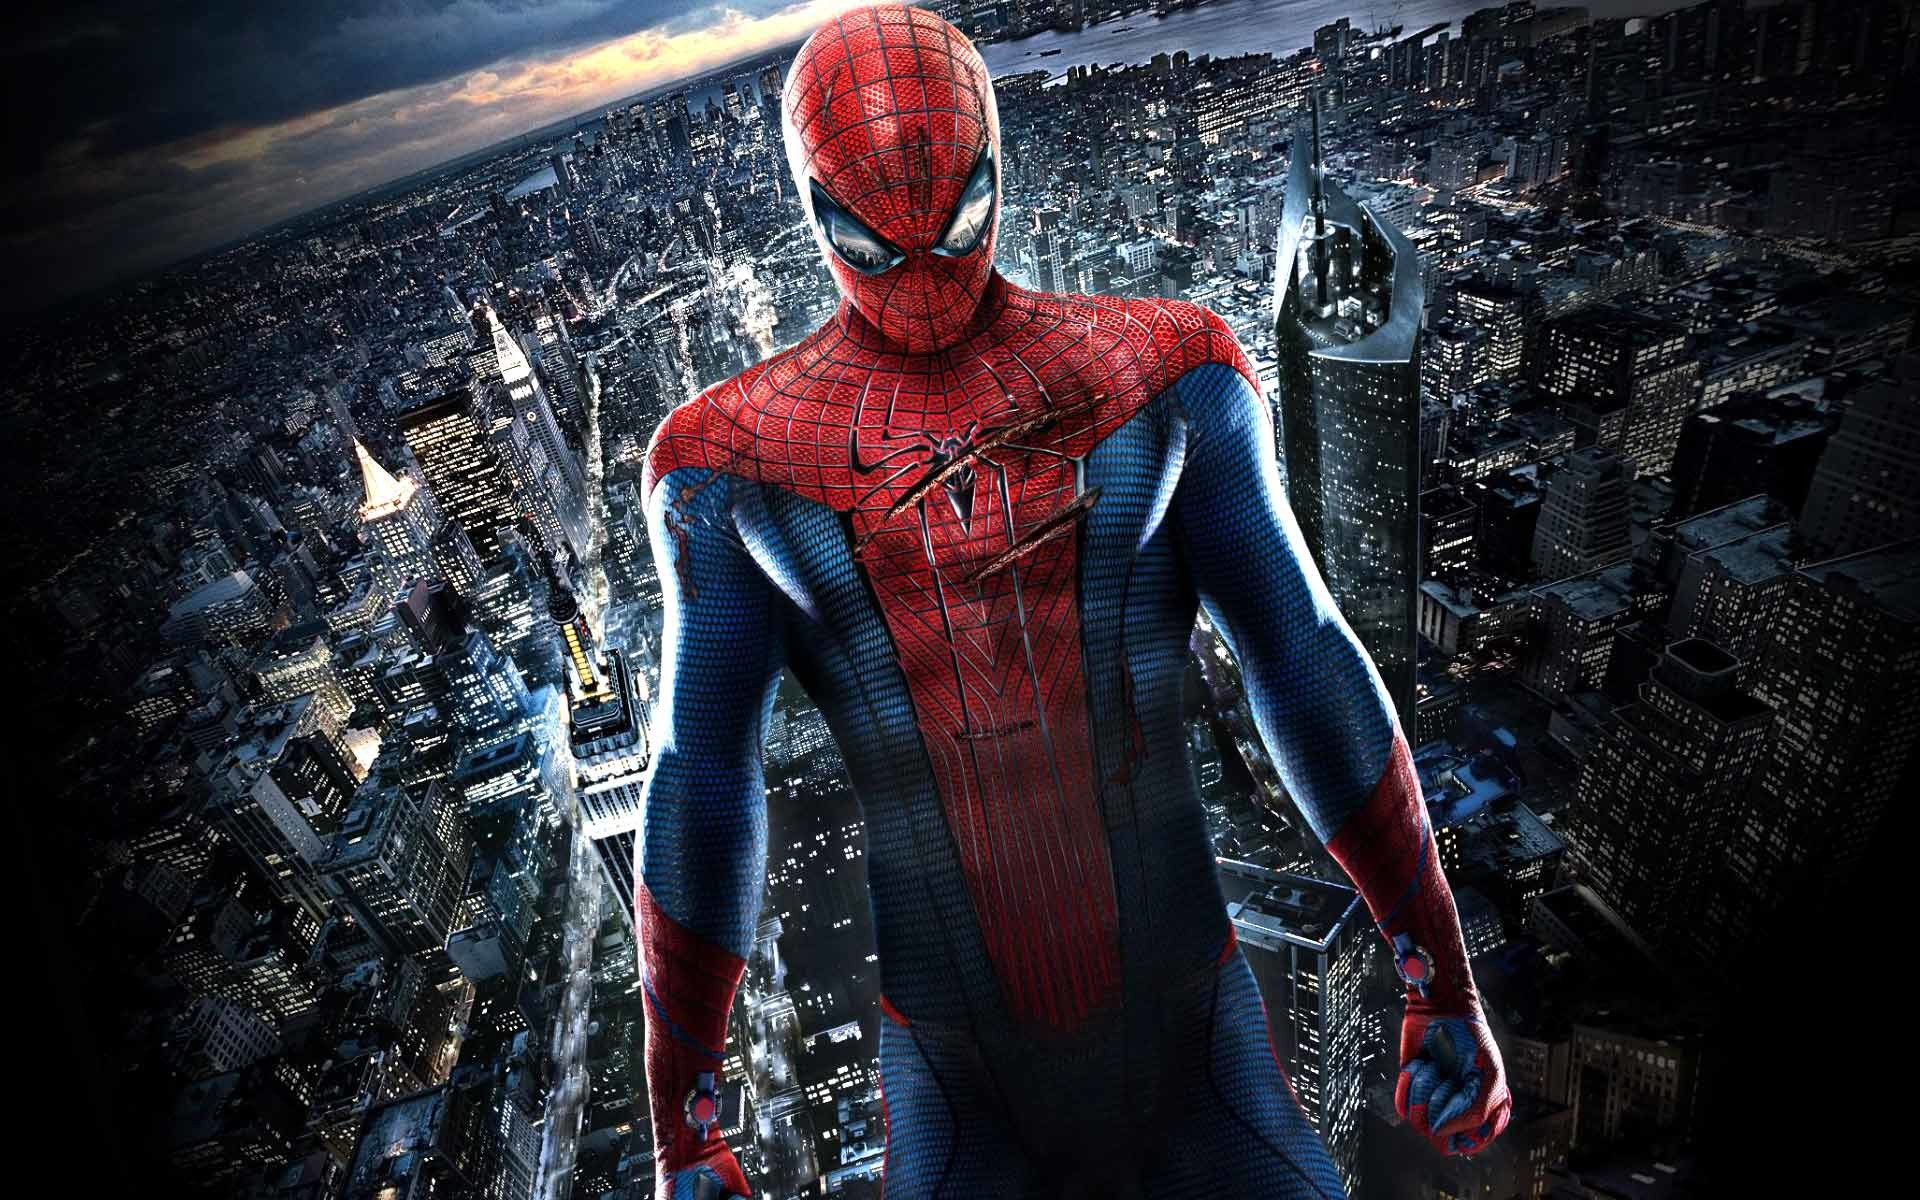 THE AMAZING SPIDER MAN 2 Wallpapers HD & iPhone 5 Wallpapers